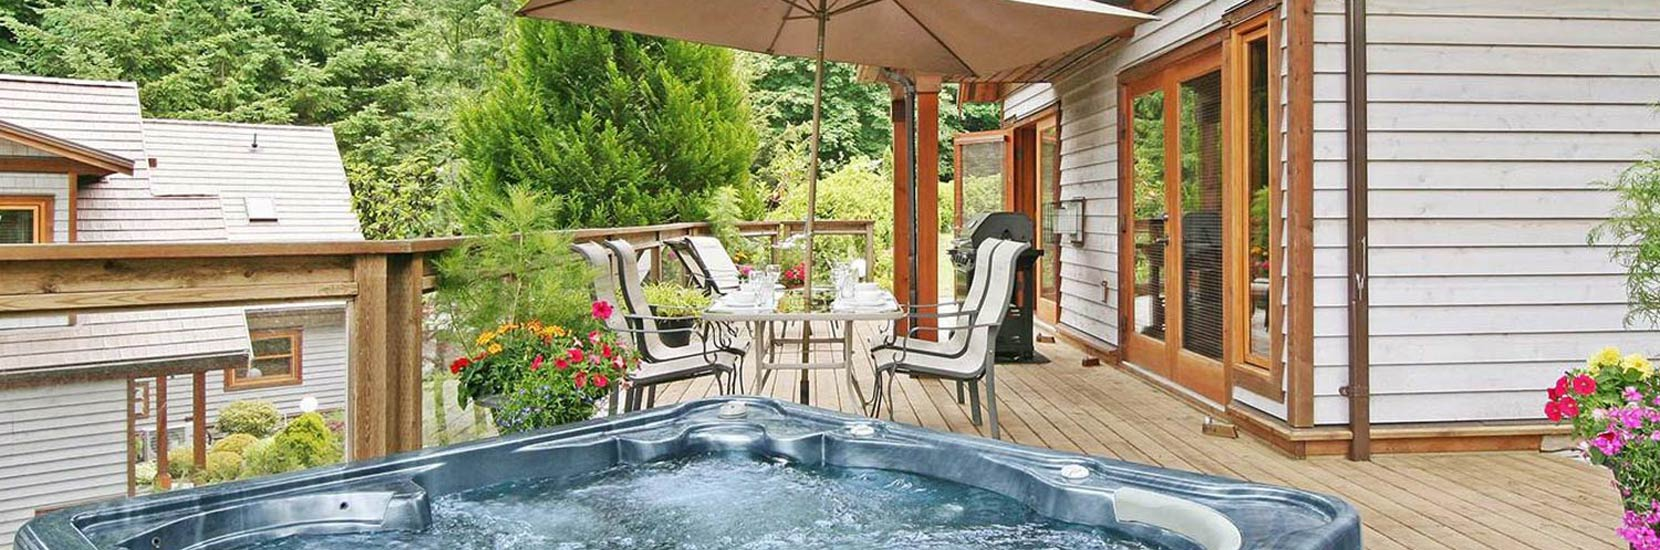 Each Executive Cottage features a large deck with private 5 person hot tub with LED lighting